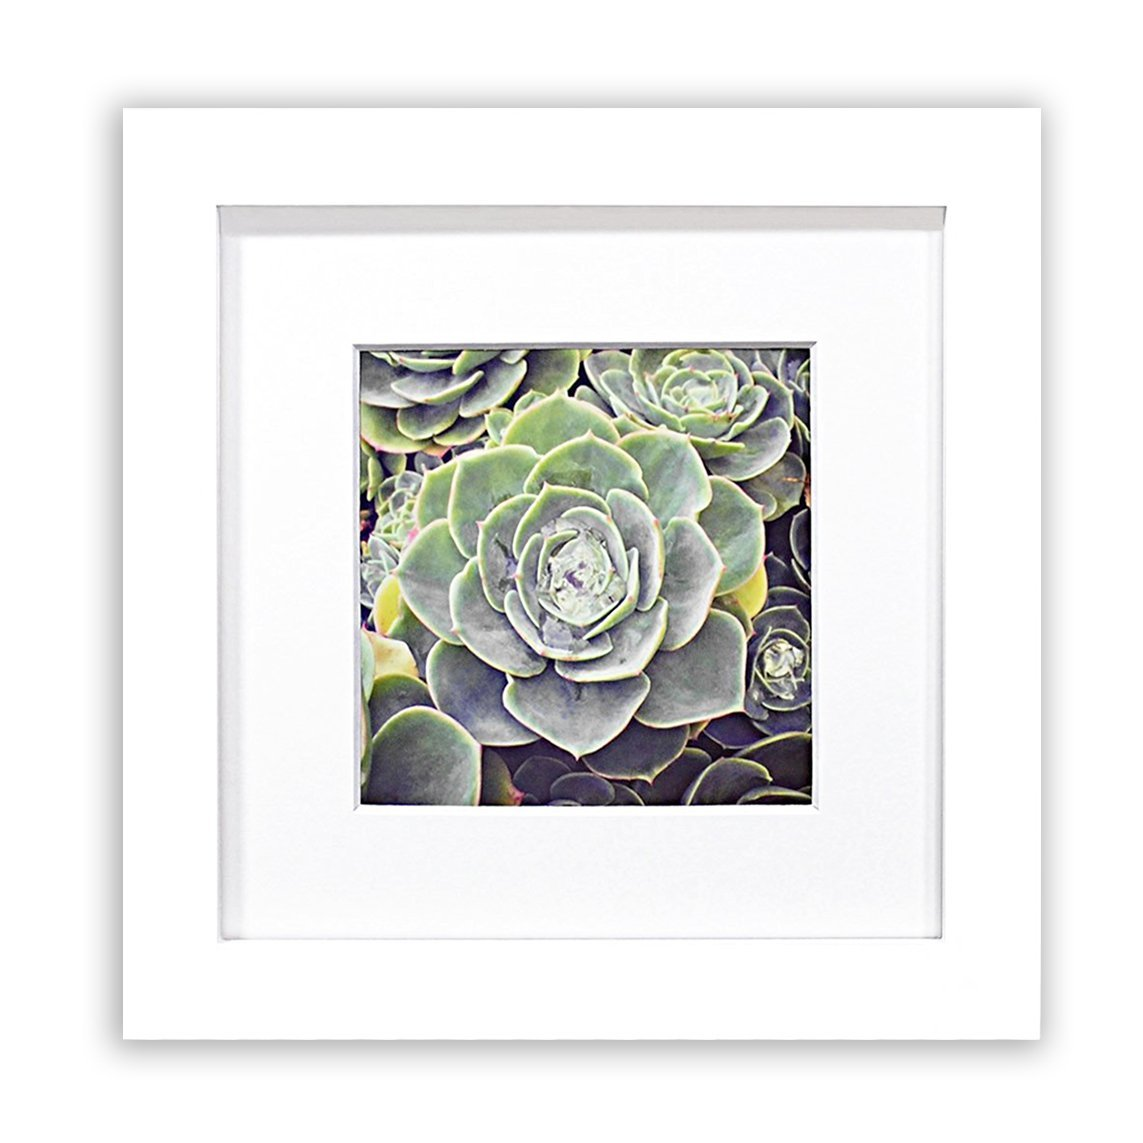 Cheap 6x6 Inch Frame, find 6x6 Inch Frame deals on line at Alibaba.com